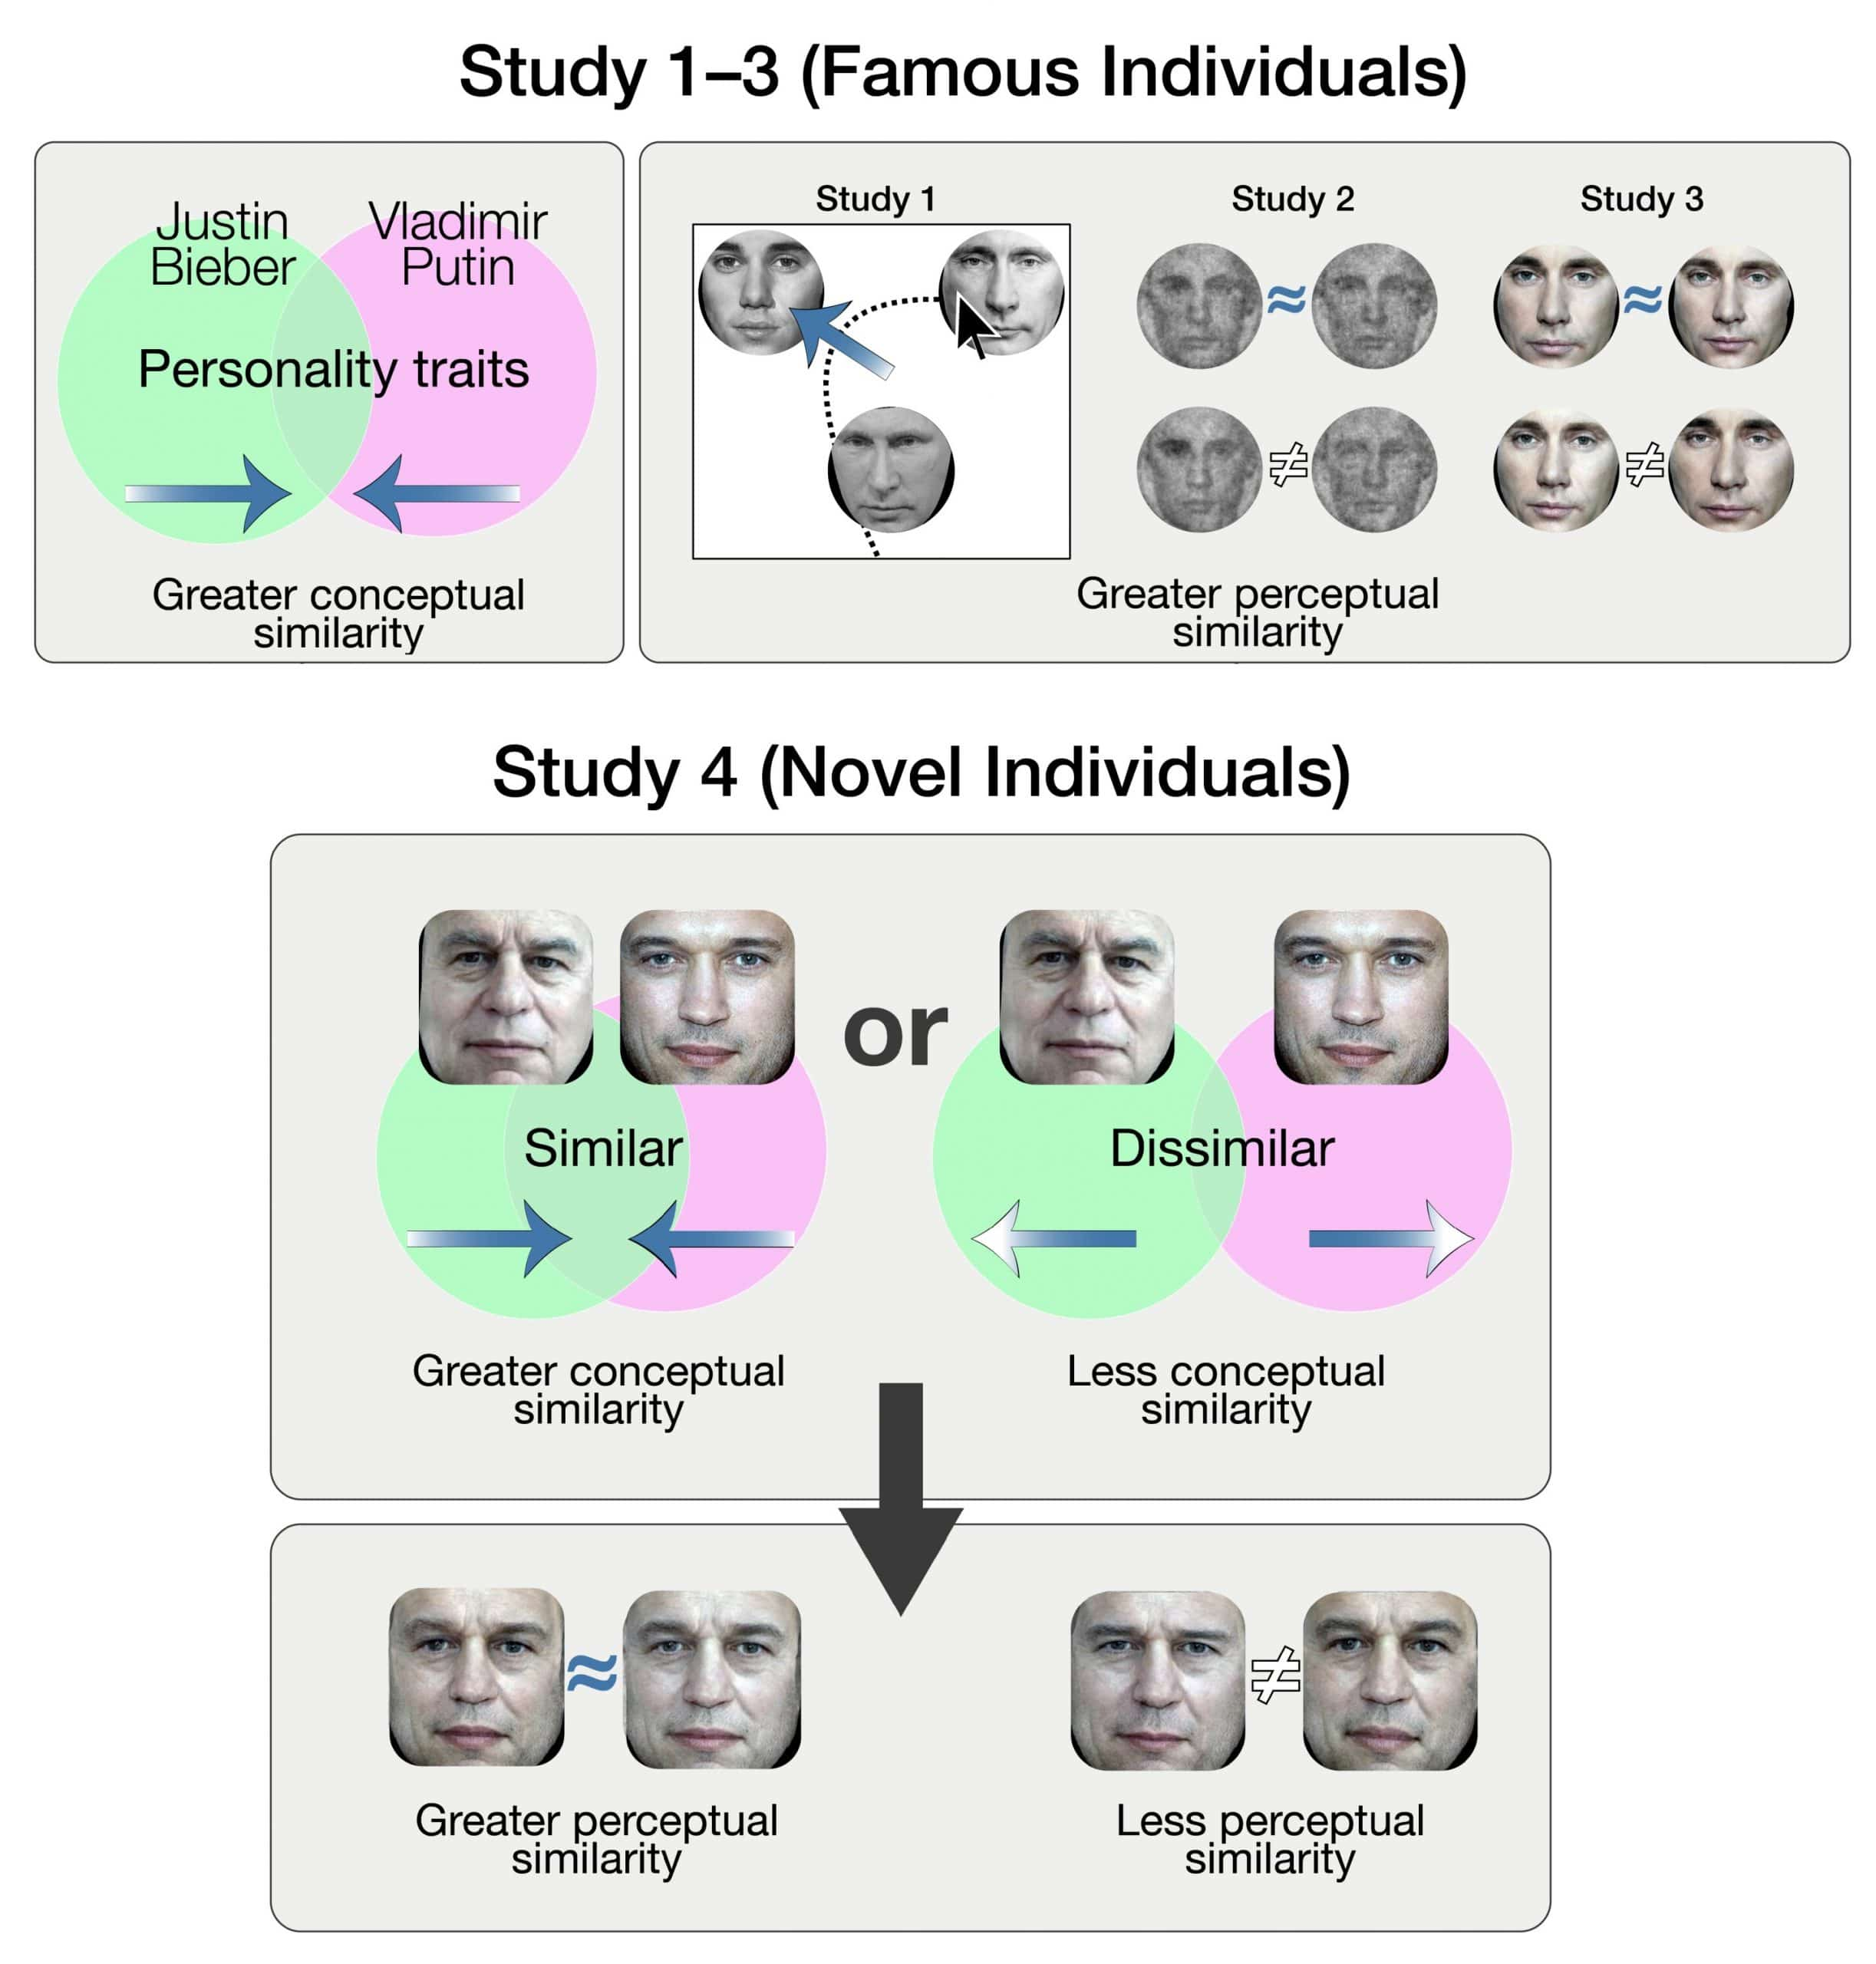 People look alike if we think they have similar personalities, new study finds